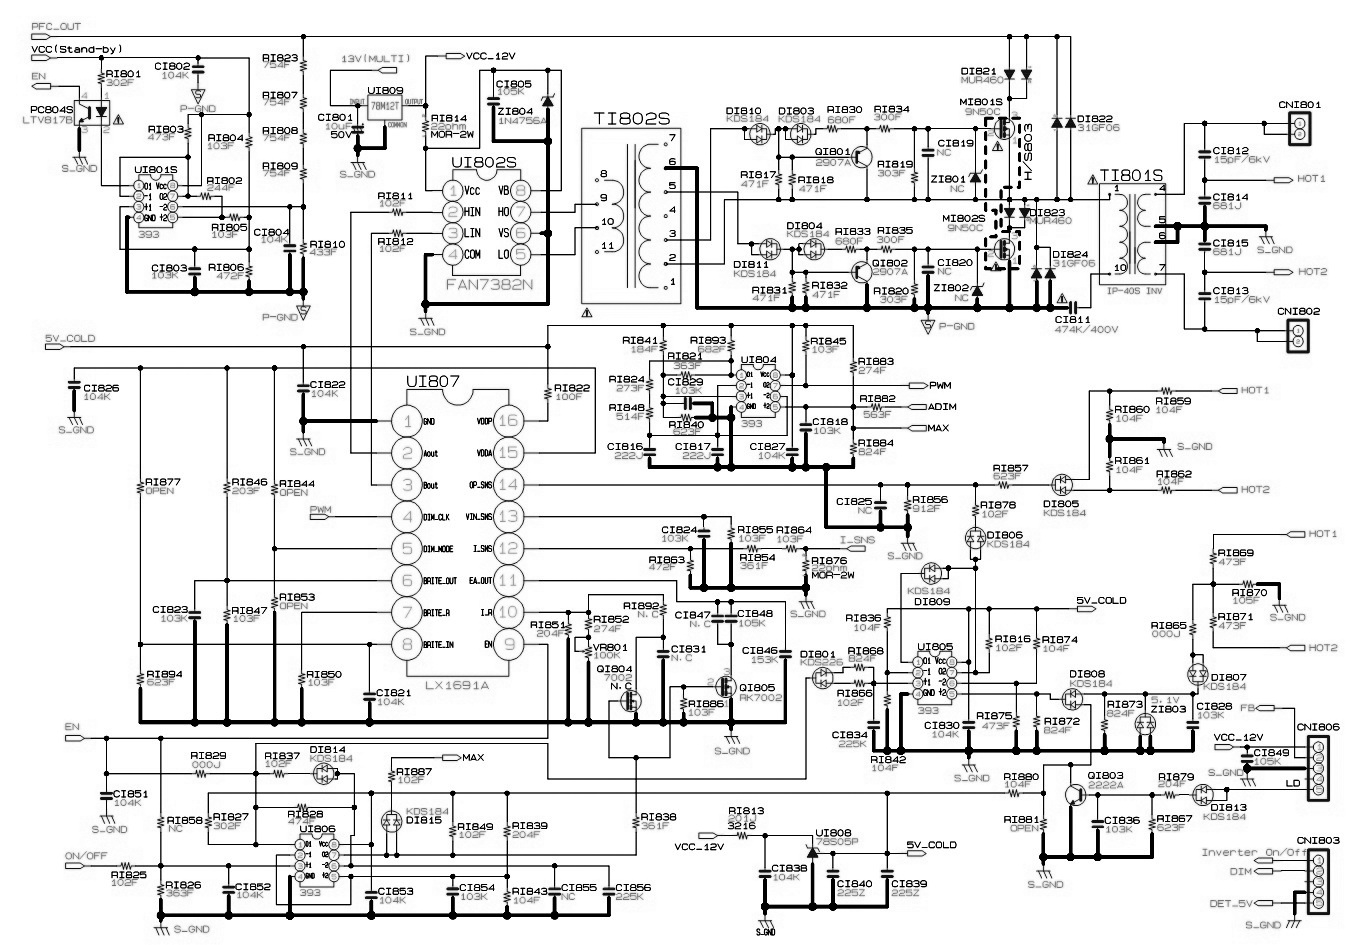 POWER 3 bn44 00165a samsung led lcd tv smps circuit diagram electro help samsung led tv wiring diagram at bakdesigns.co